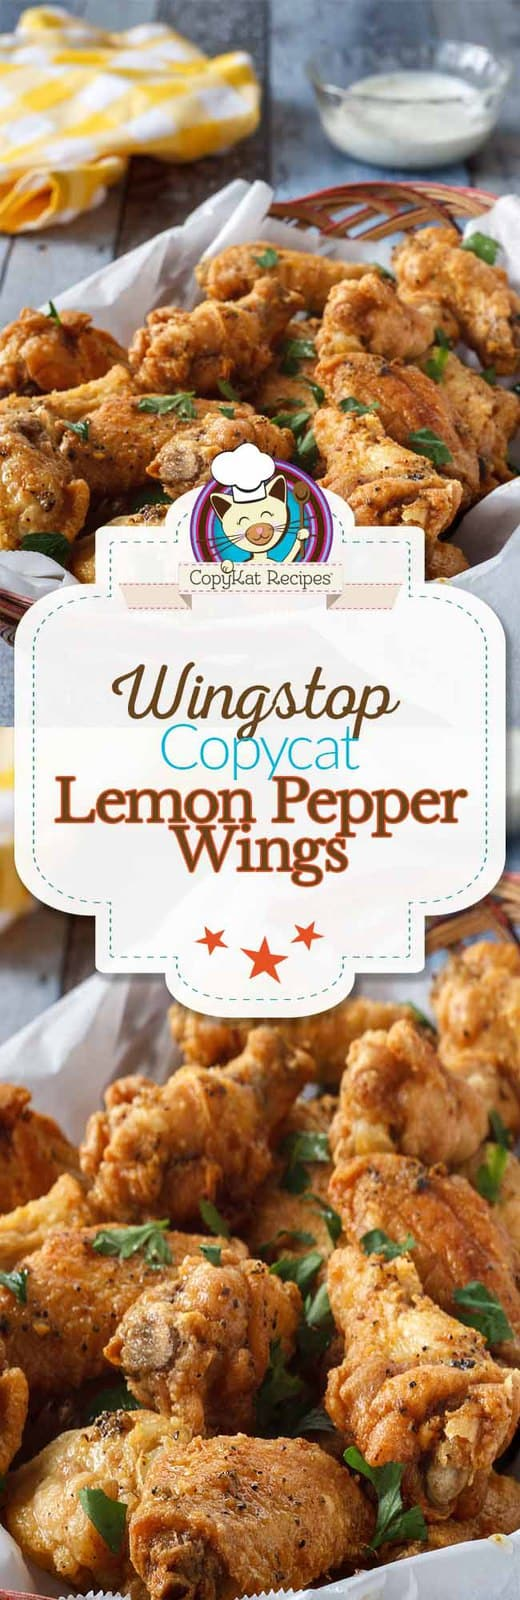 Enjoy these Wingstop Lemon Pepper Wings when you make them at home with this copycat recipe! #copycat #recipe #appetizer #chicken #wing #wingstop